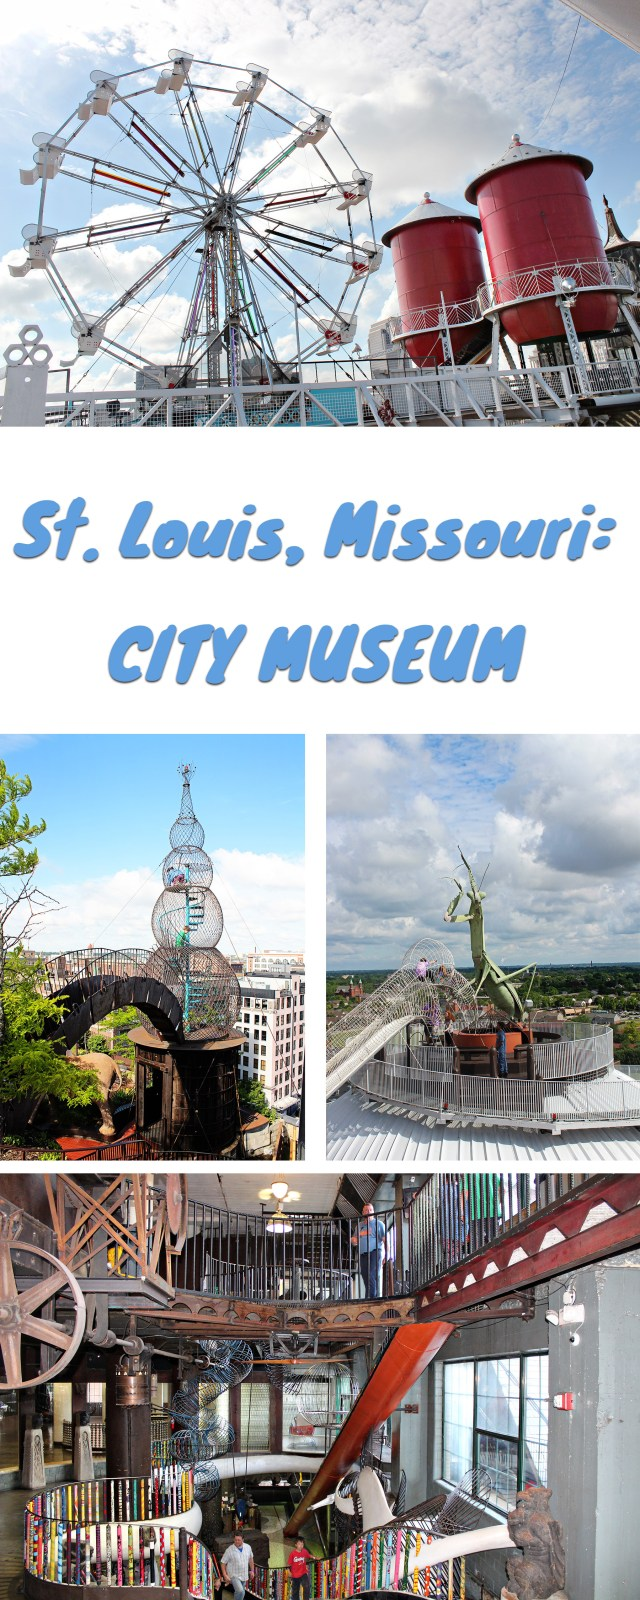 City Museum In St. Louis, Missouri